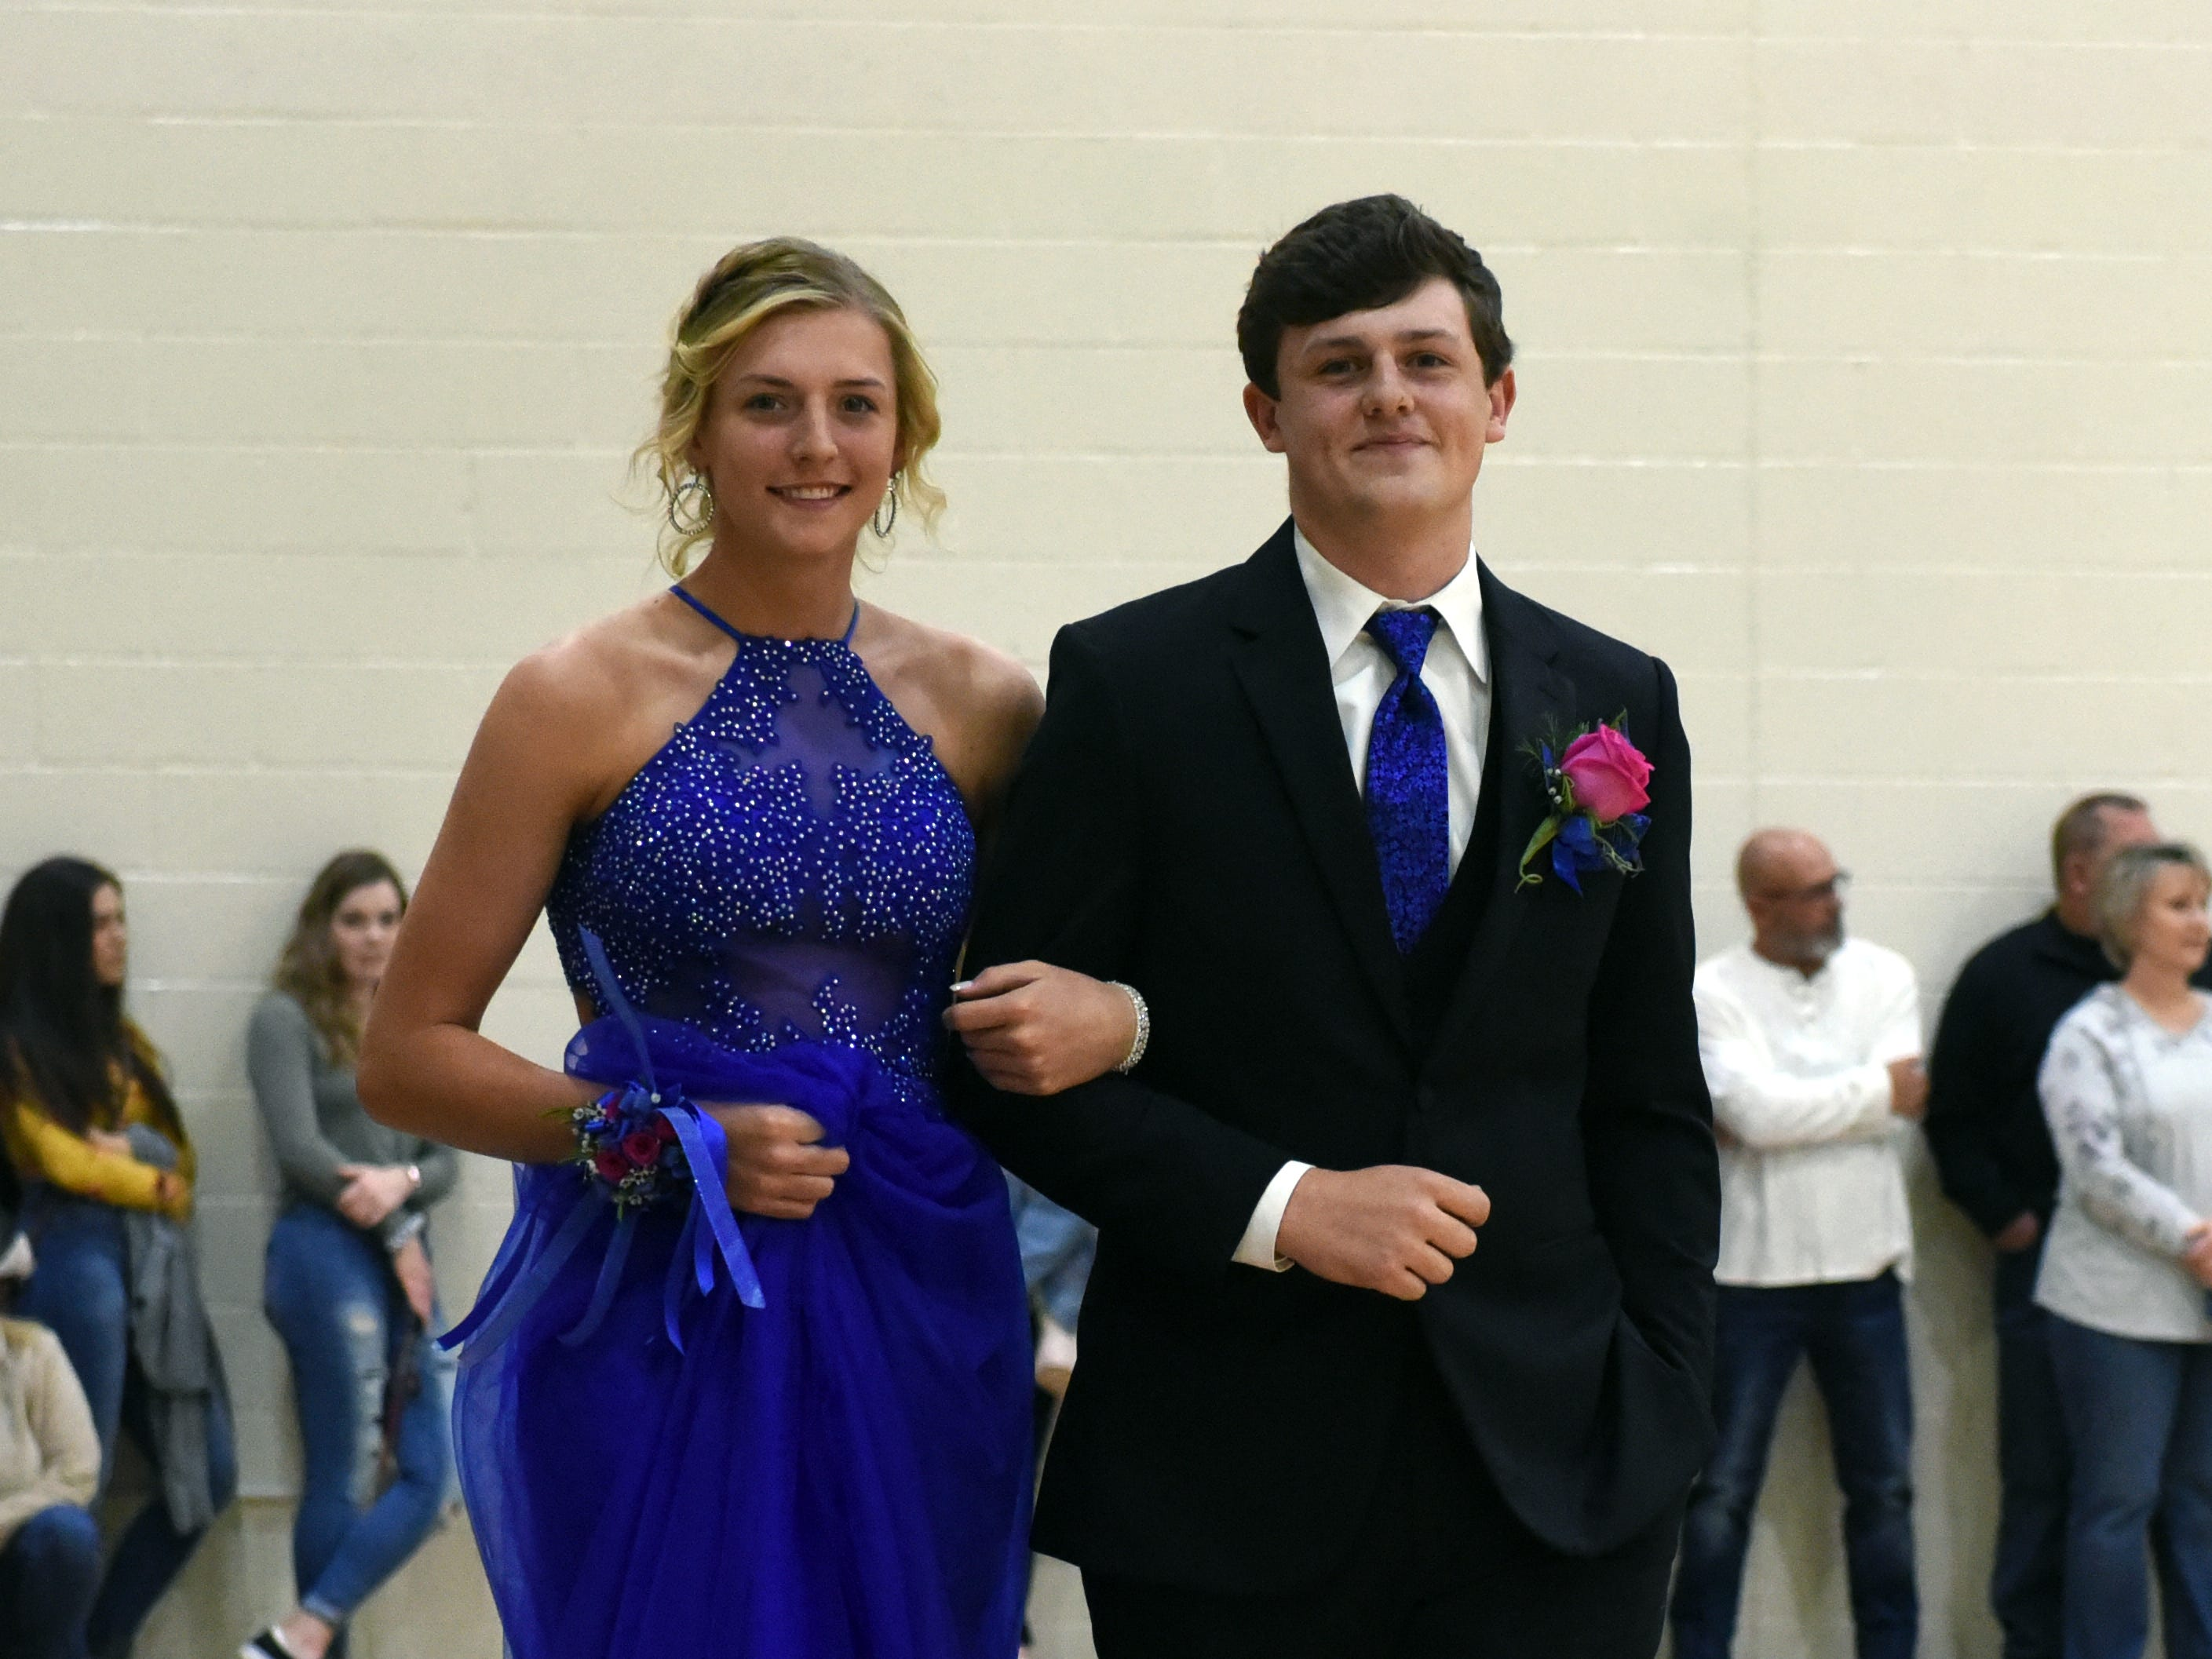 Maysville High School held its prom on Saturday night at the high school.